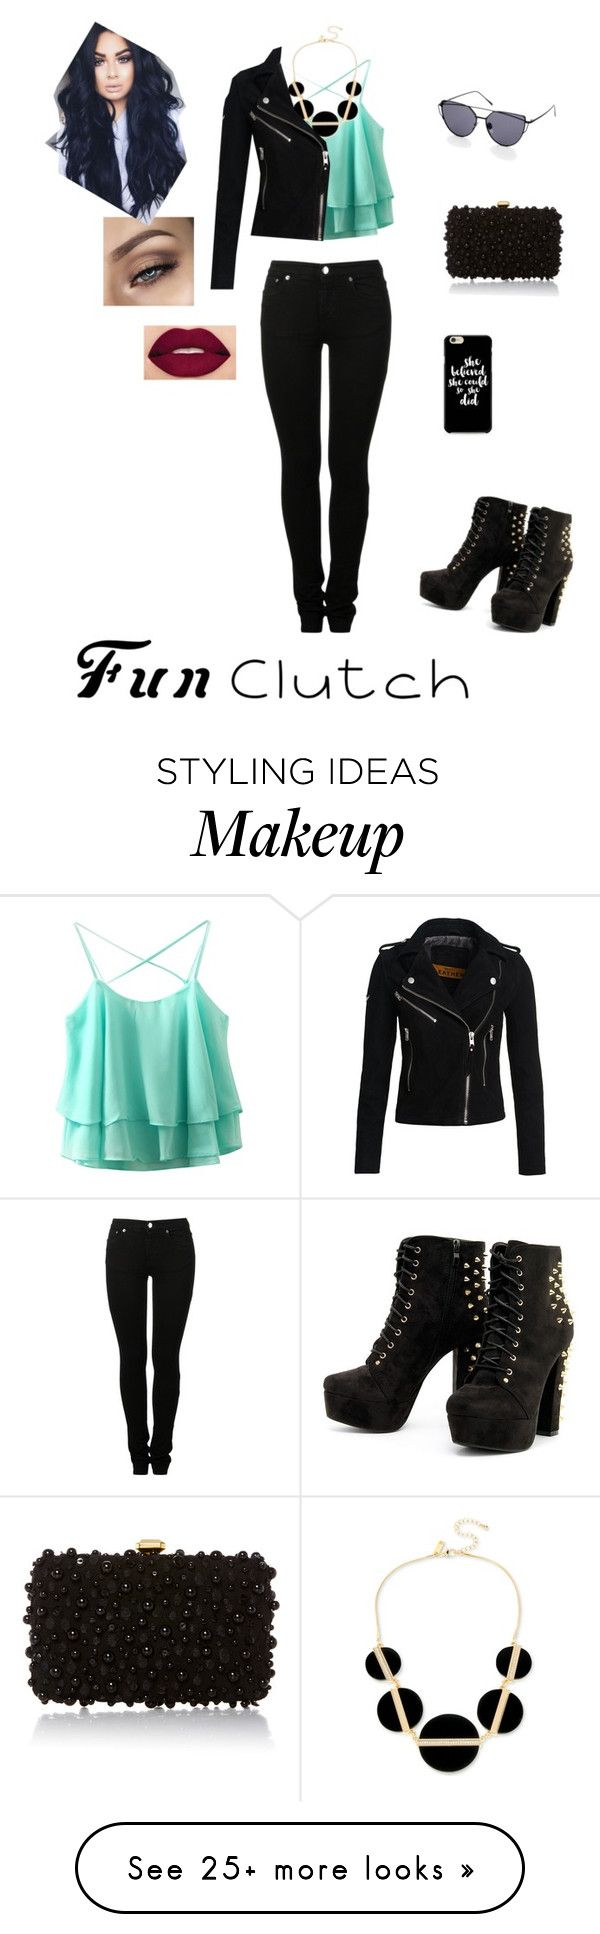 """fun clutch"" by sidney-mcfarland12 on Polyvore featuring Smashbox, Elie Saab, INC International Concepts, Superdry and MM6 Maison Margiela"